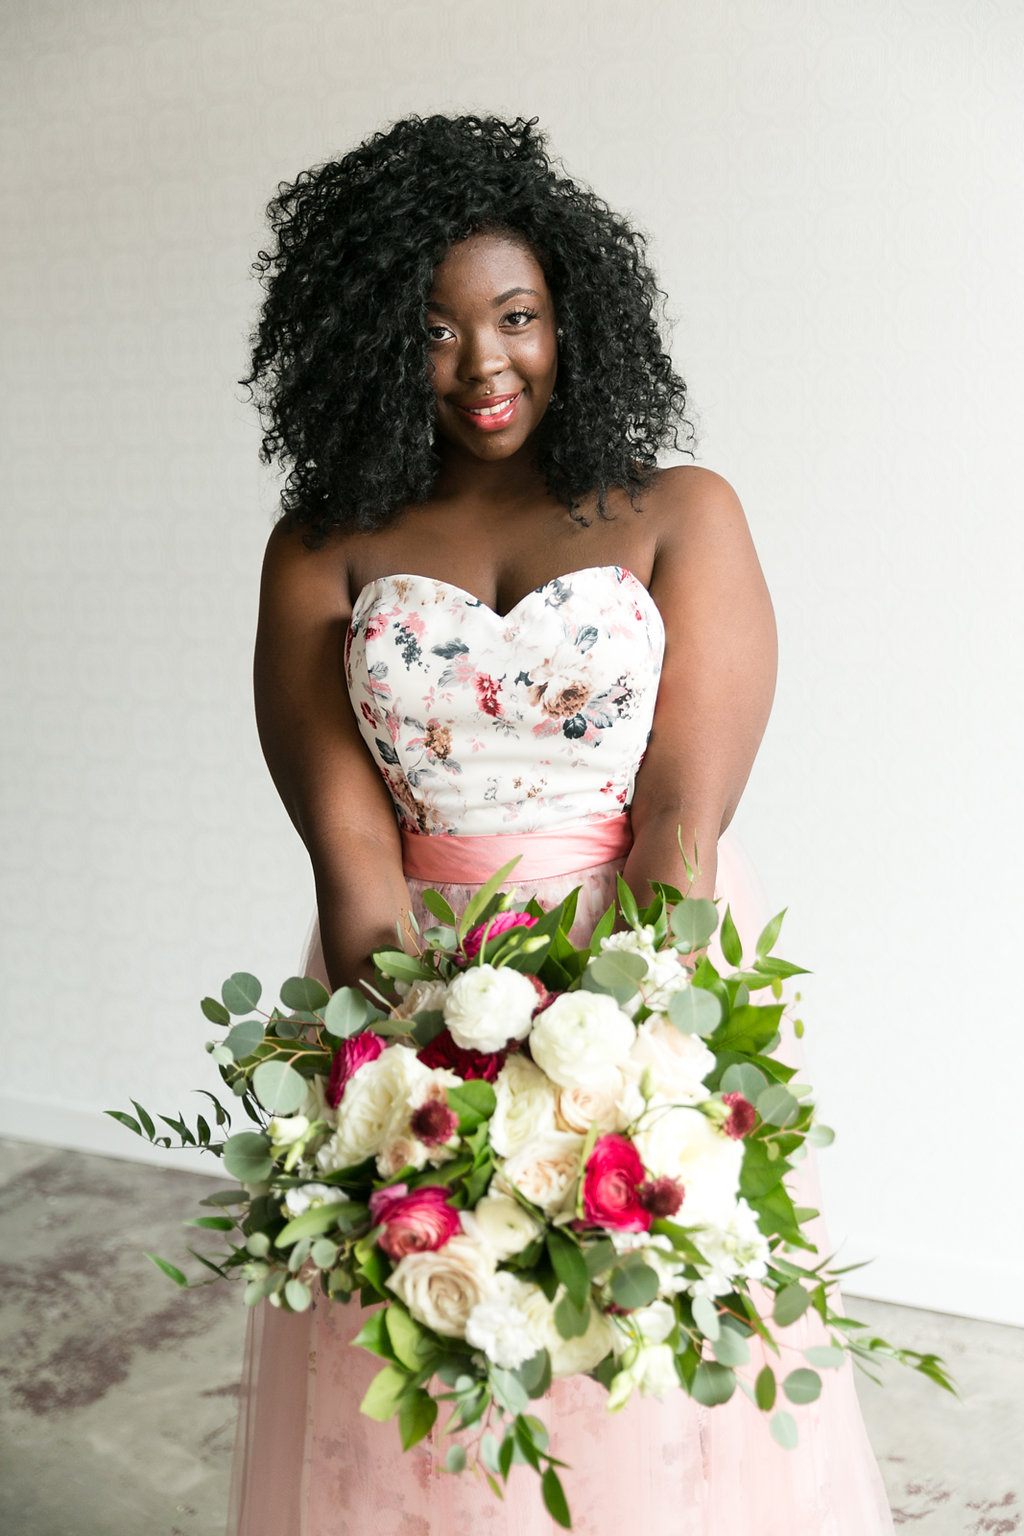 Plus Size Model | Ashley Ice Photography